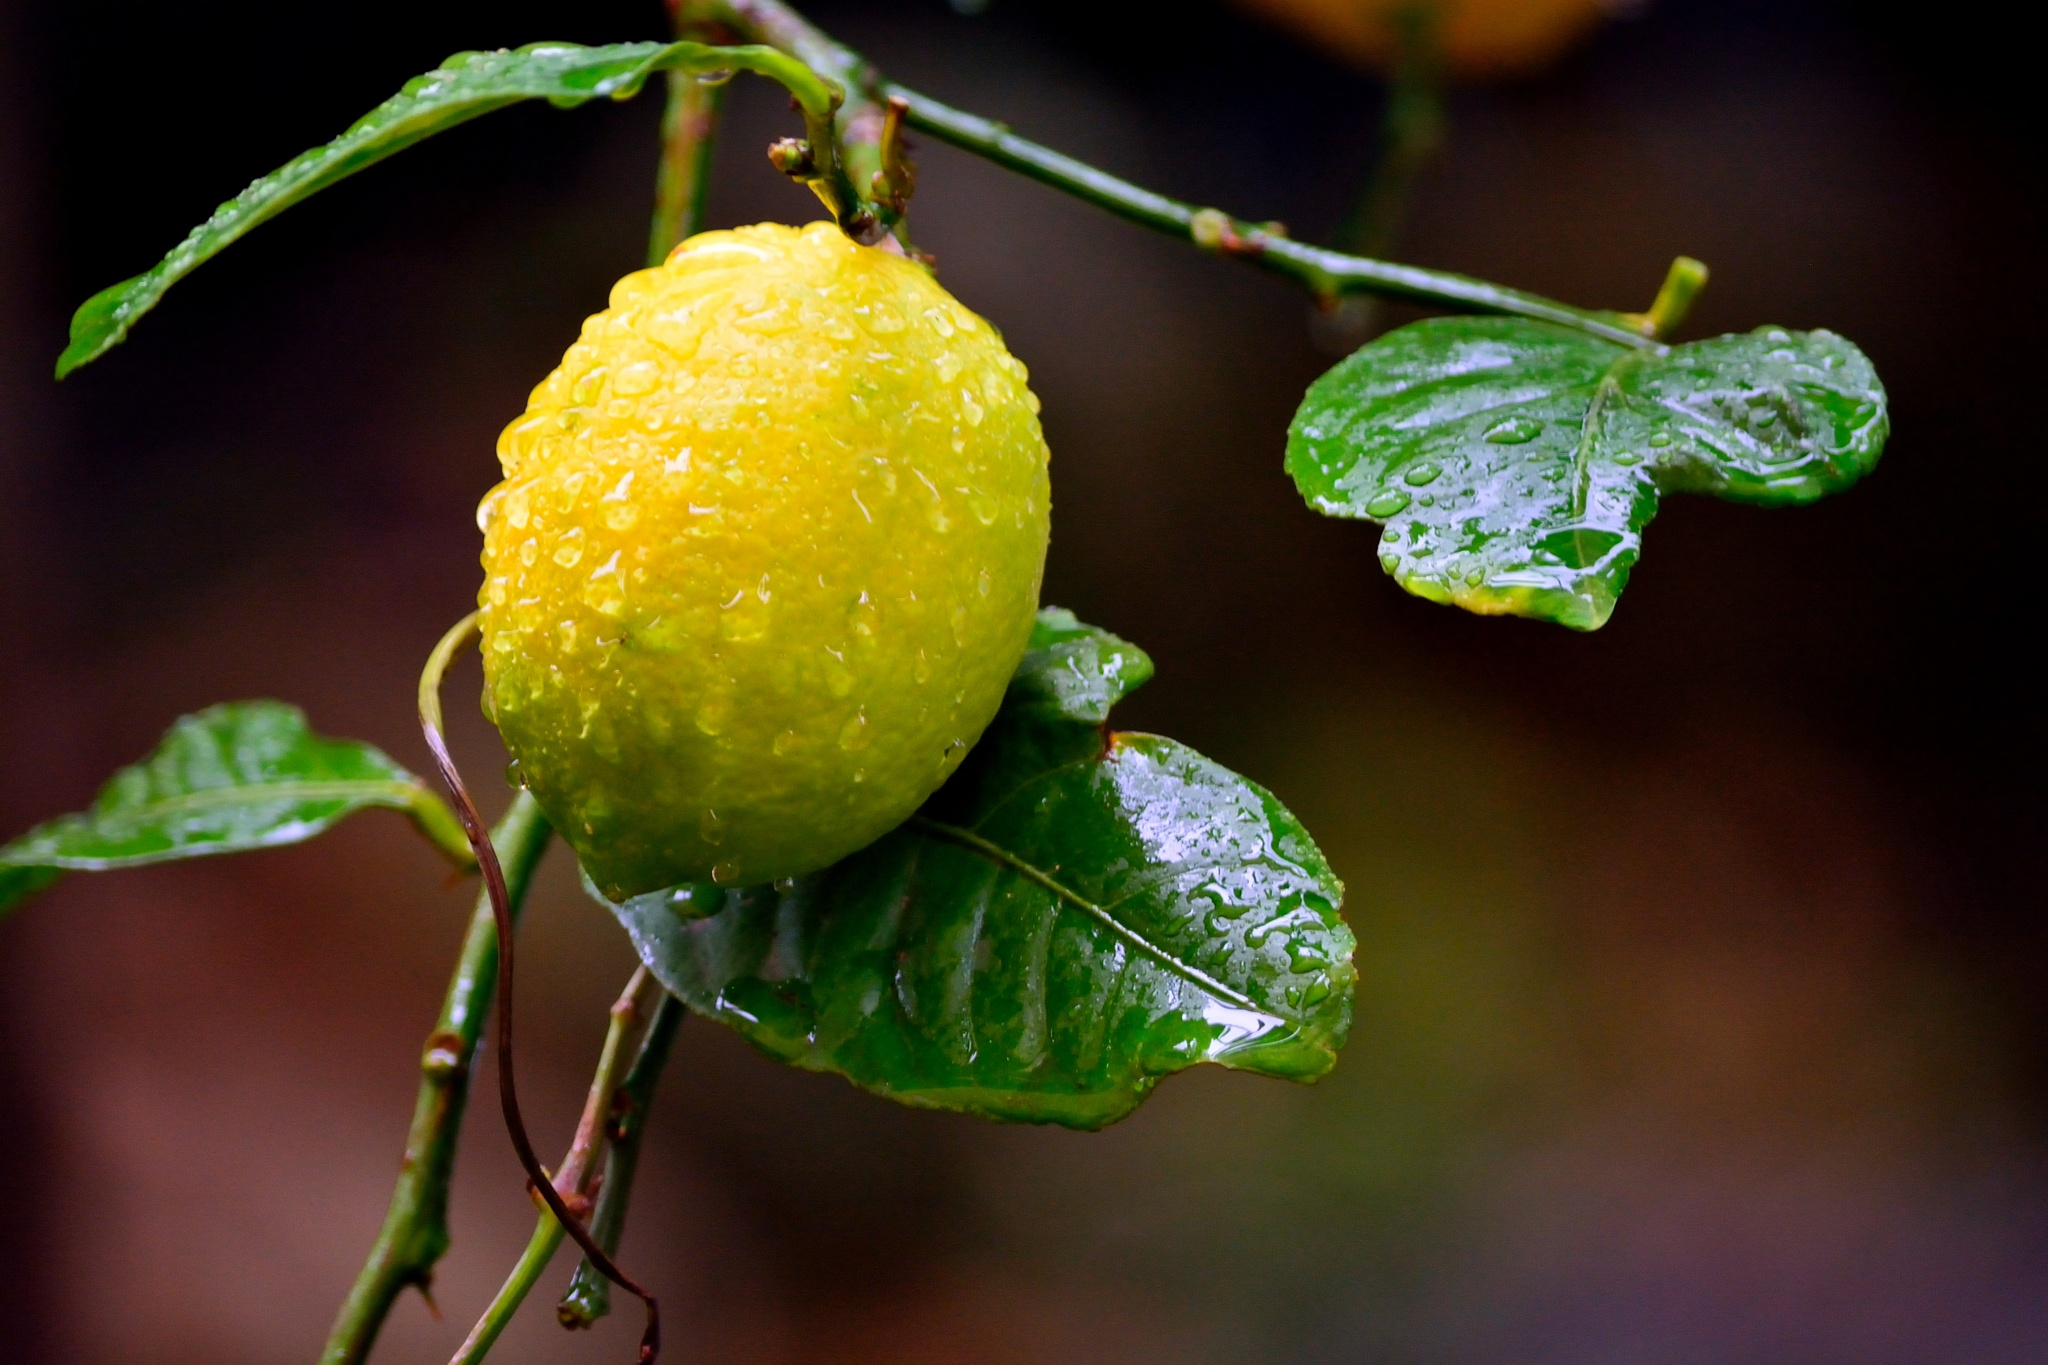 Sorrento lemon in the rain by InSight